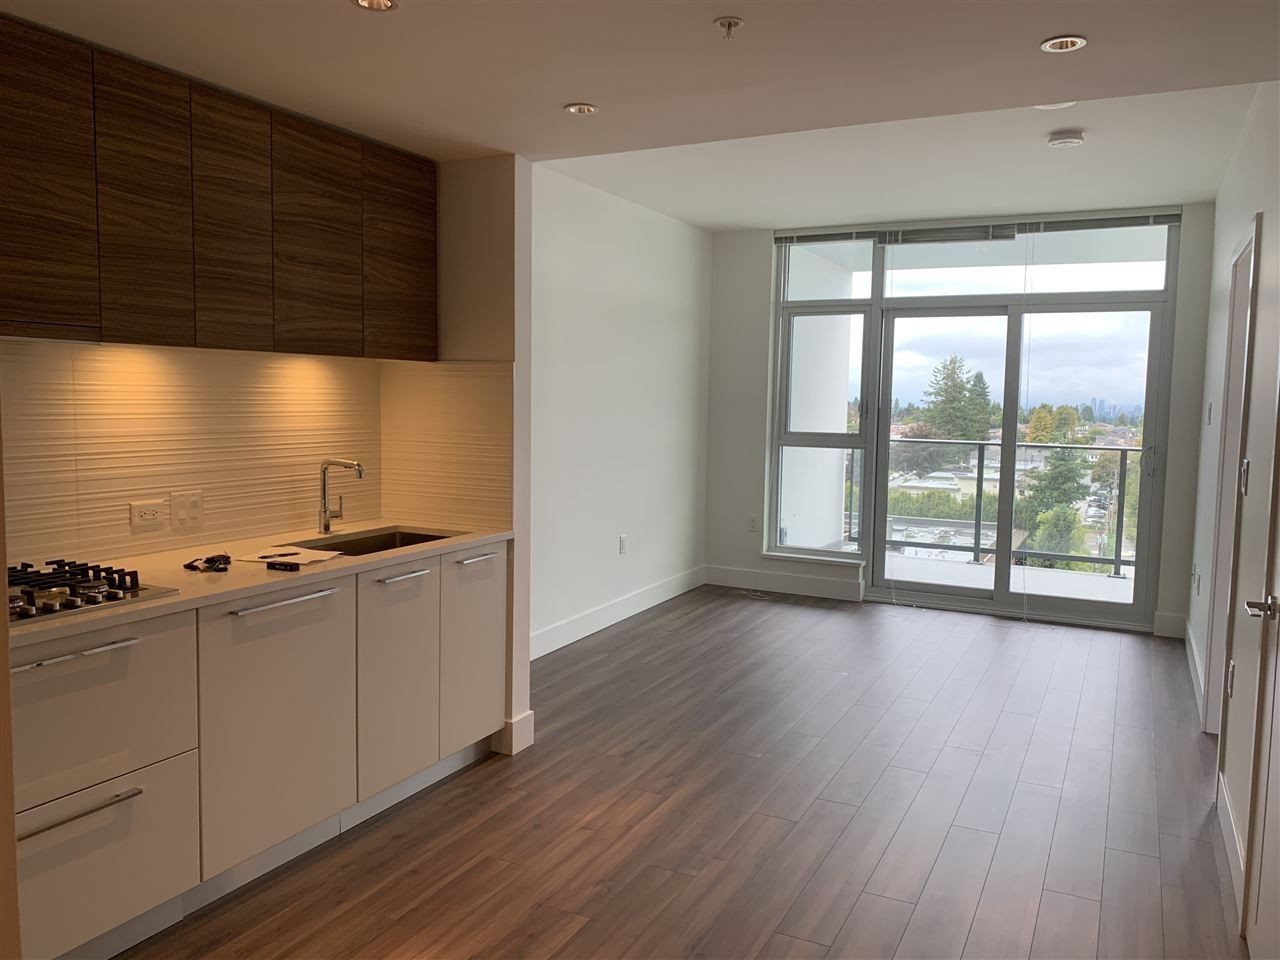 Main Photo: 1003 7303 NOBLE LANE in Burnaby: Edmonds BE Condo for sale (Burnaby East)  : MLS®# R2404568